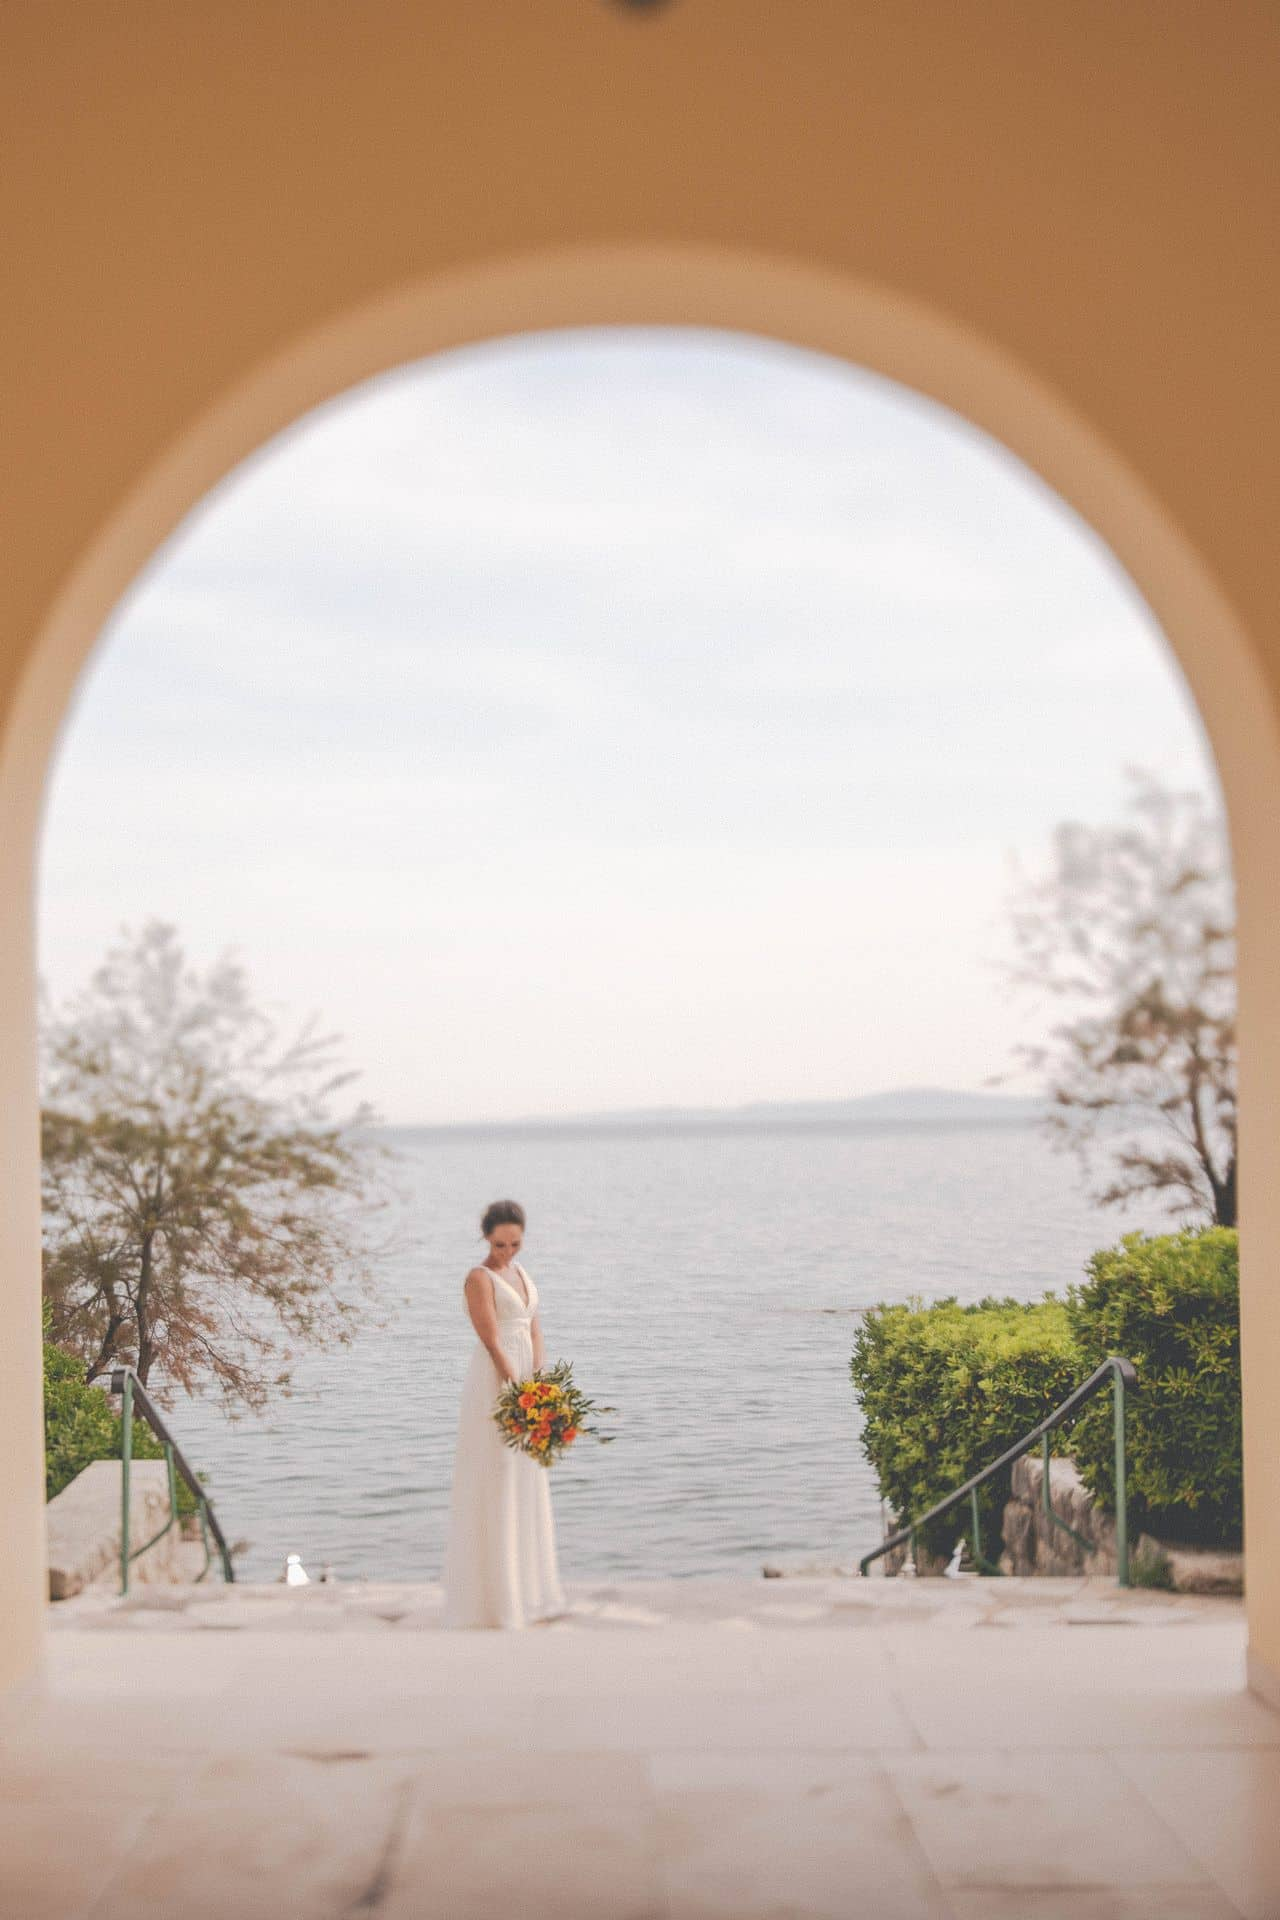 wedding photographer split villa dalmatia